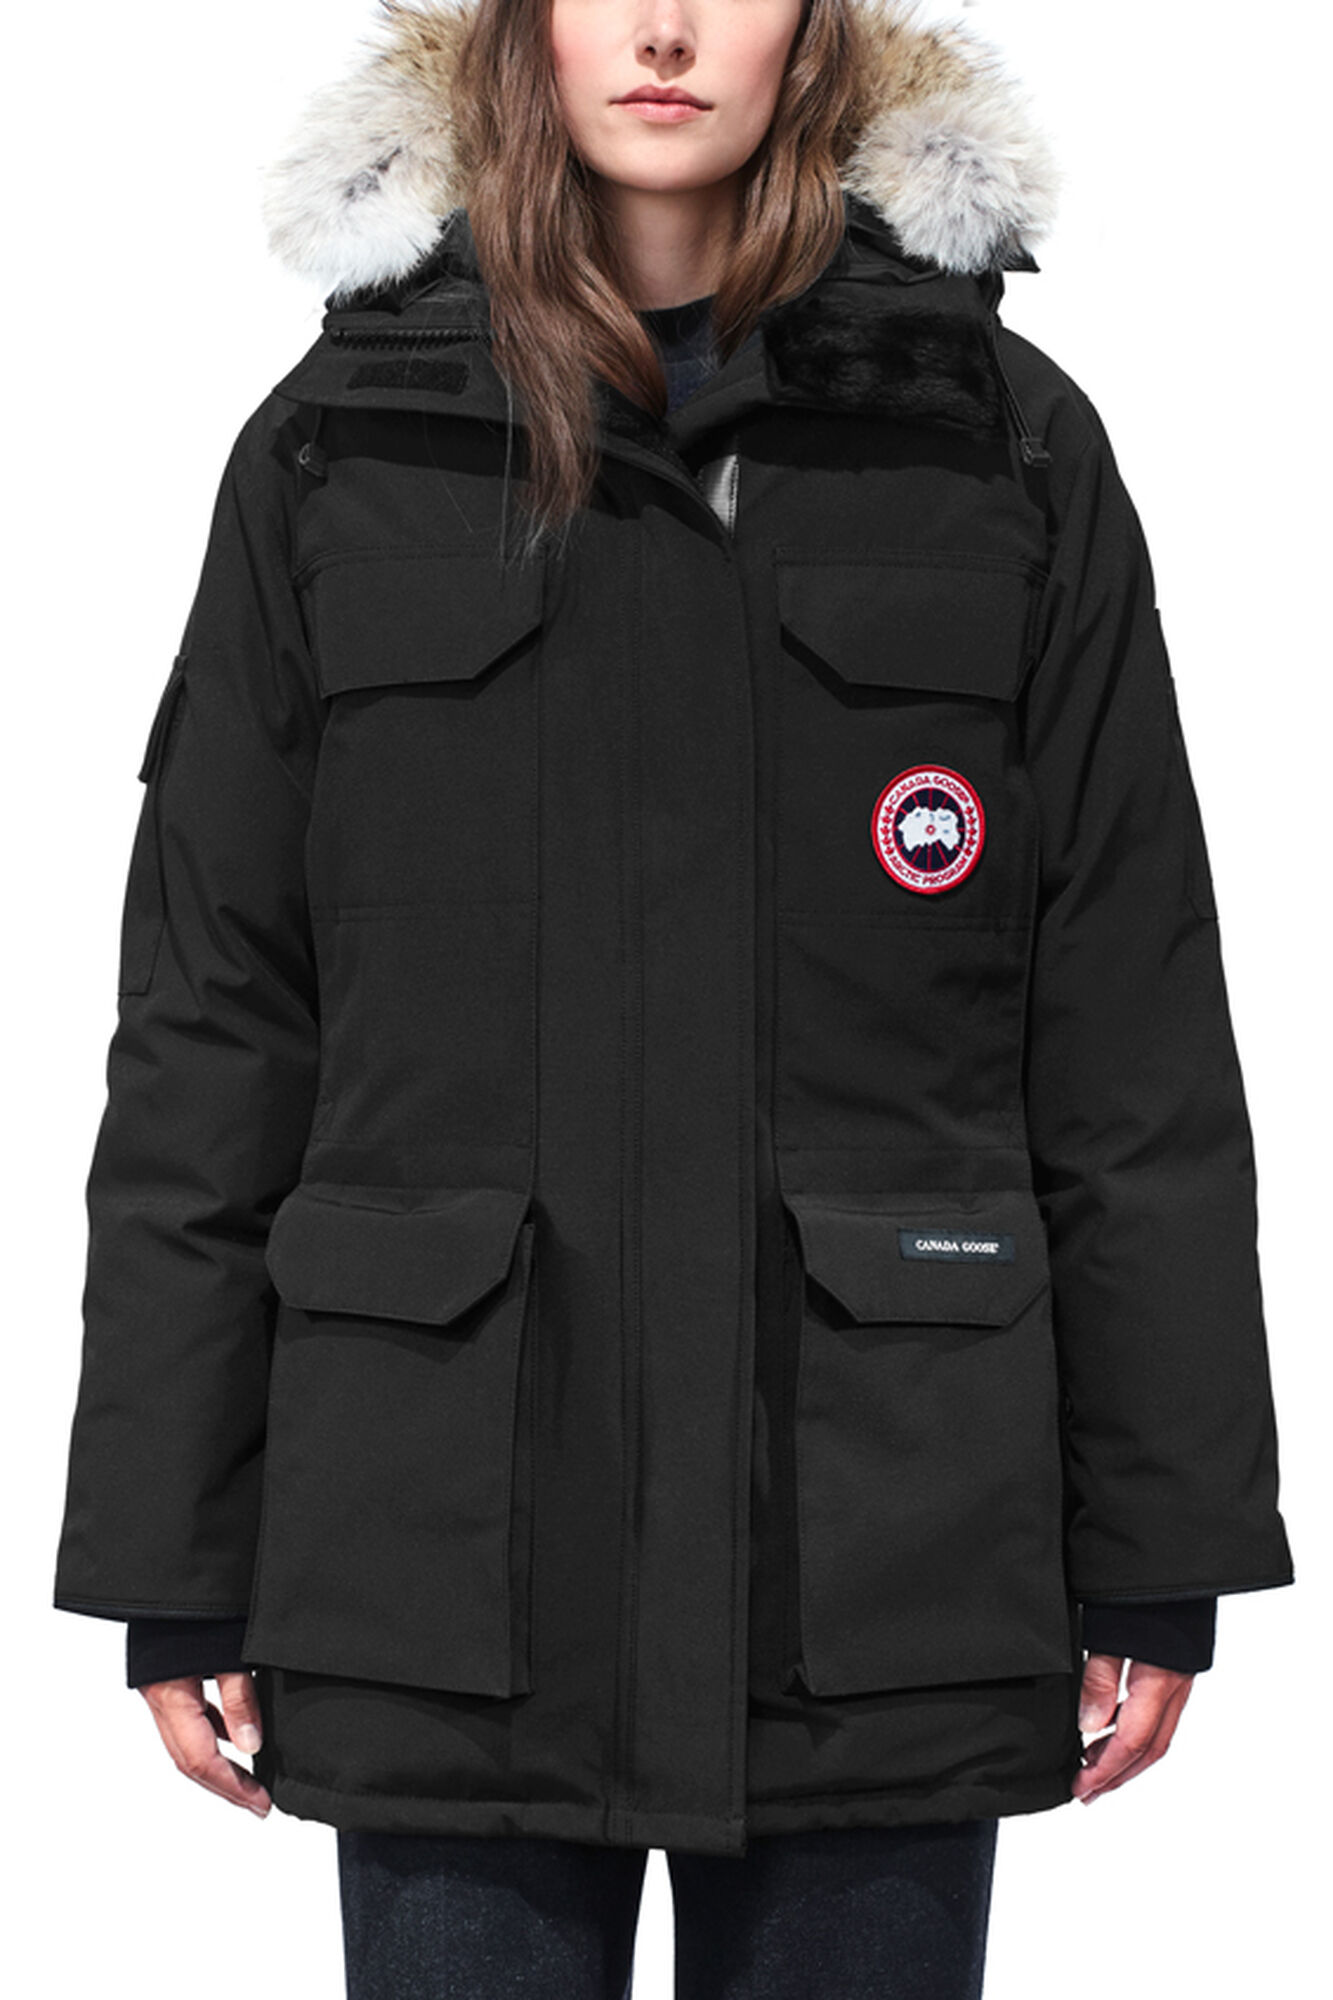 Women's Arctic Program Expedition Parka | Canada Goose®